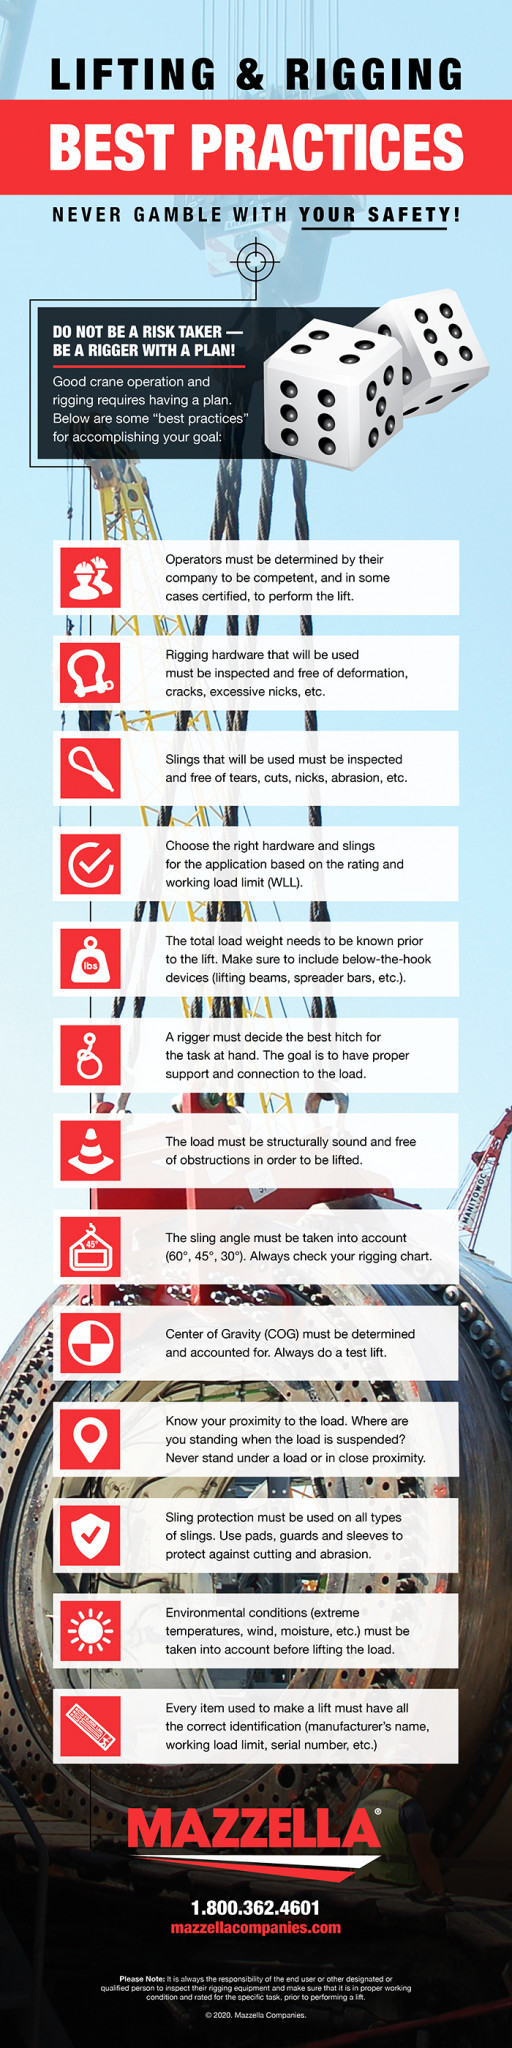 Lifting & Rigging Best Practices Infographic: Resource